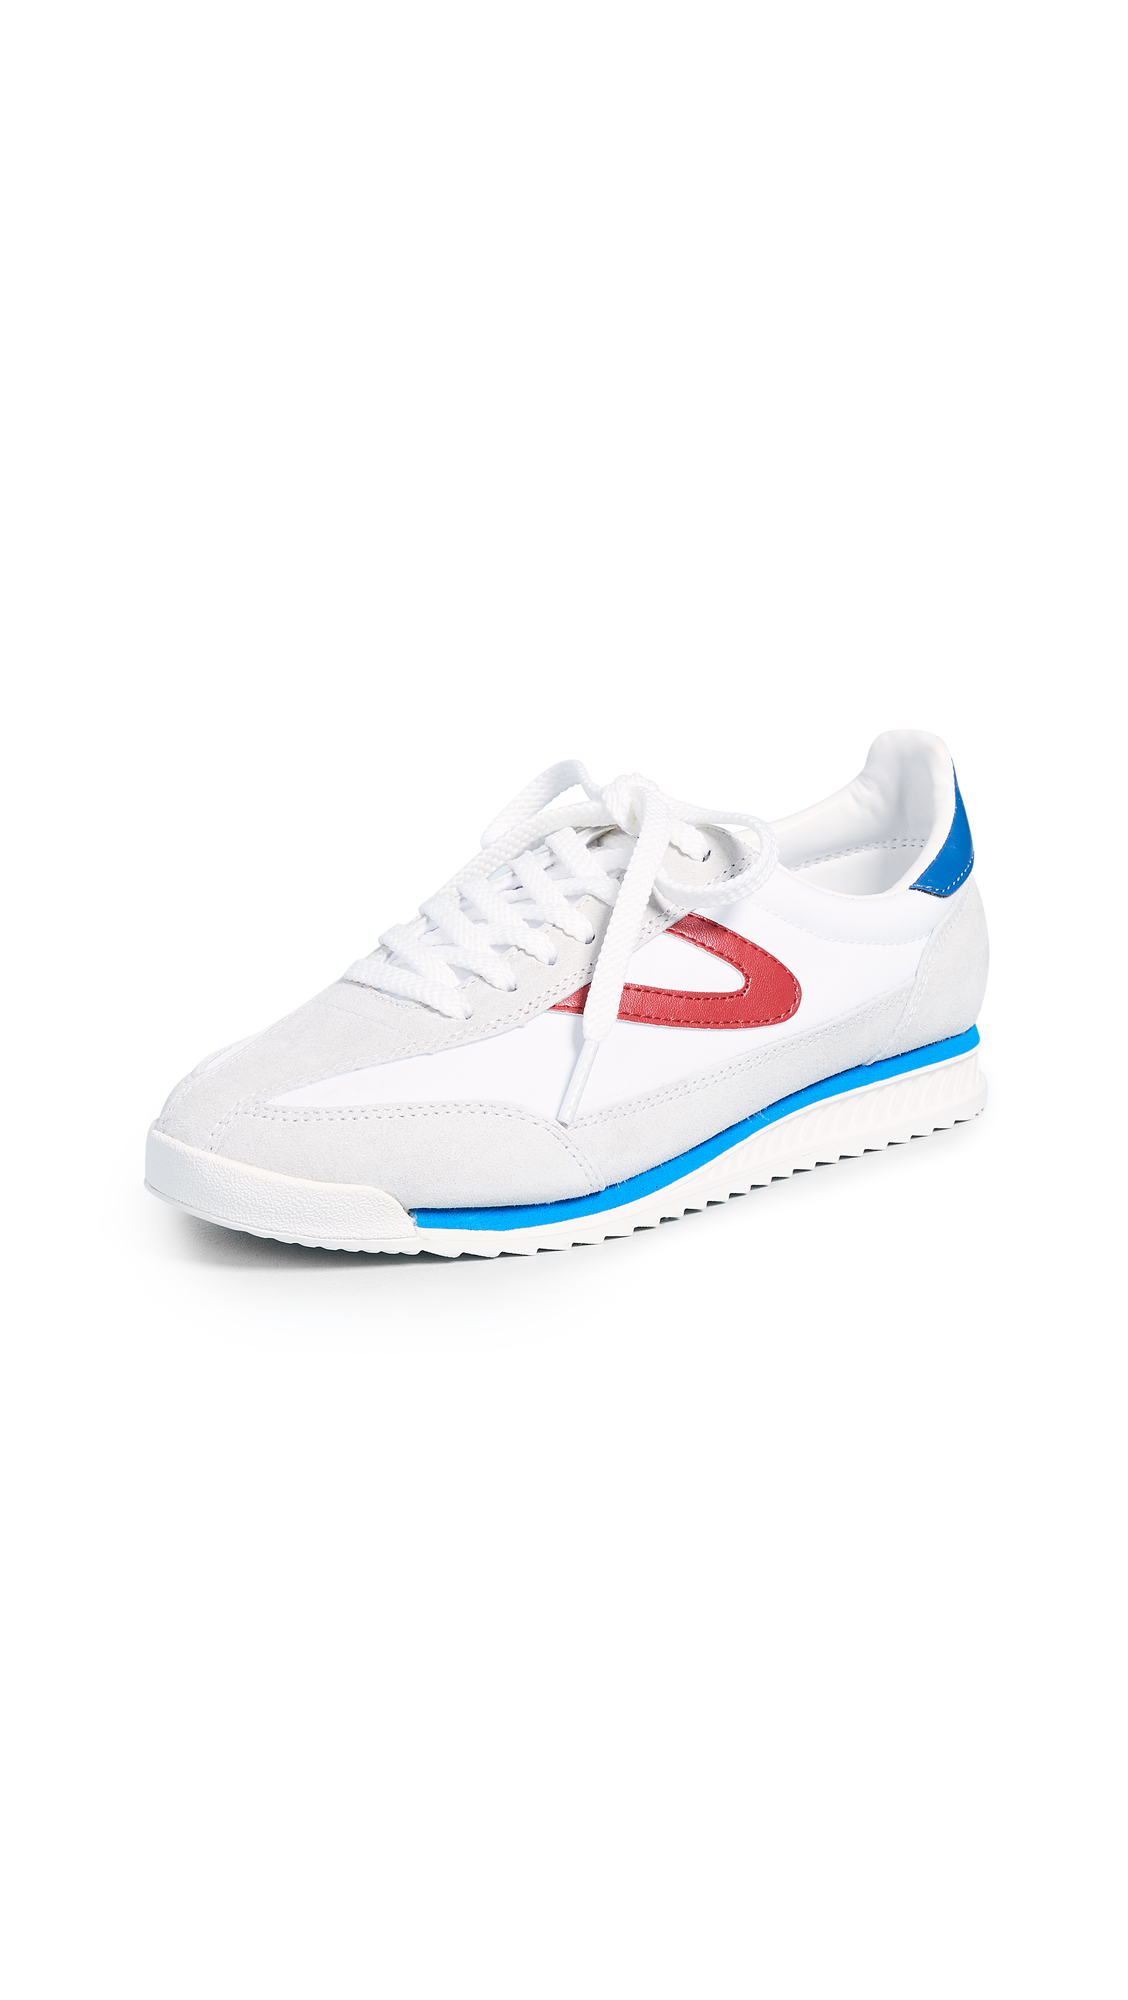 Tretorn Rawlins III Joggers - Off White/White/Red/Blue